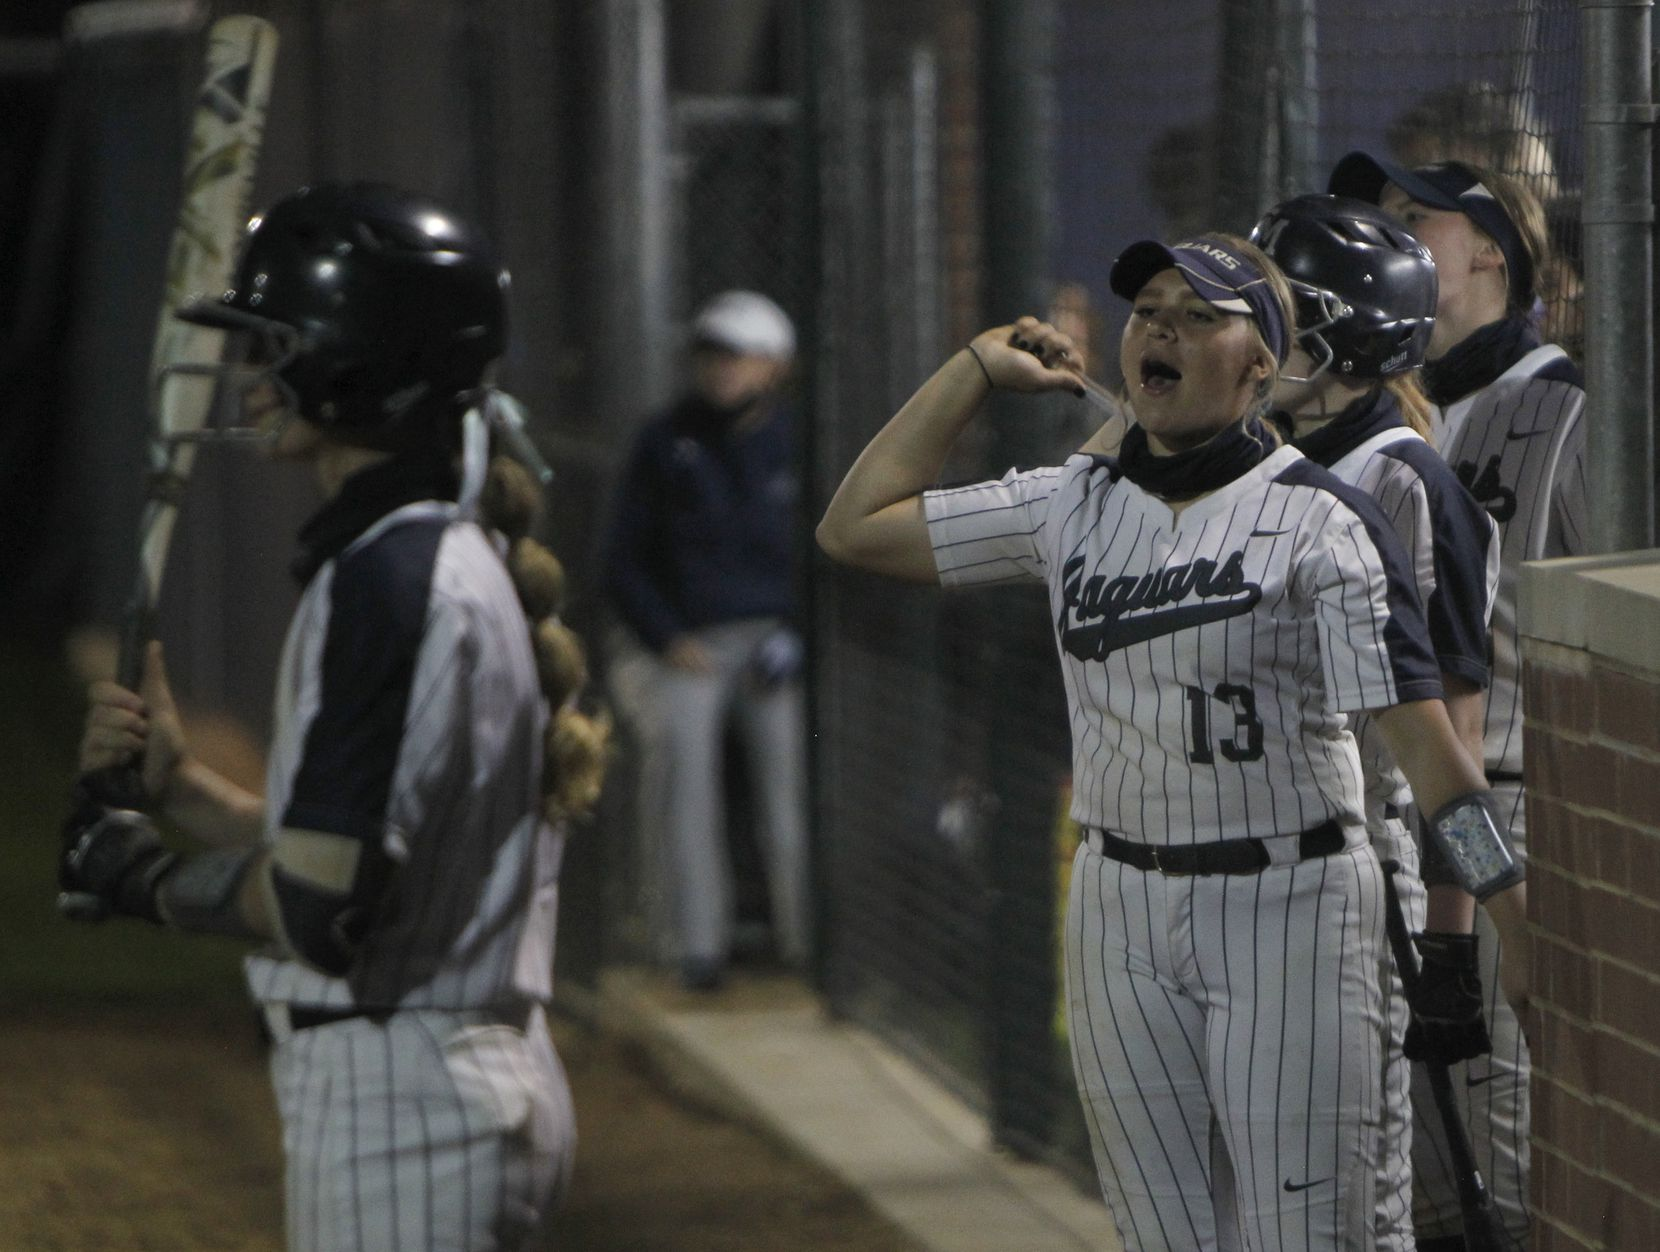 Flower Mound pitcher Karson Hassan (13) delivers vocal support to teammates from the dugout during the bottom of the 2nd inning of play against Plano. Flower Mound won 13-2. The two teams played their District 6-6A softball game at Flower Mound High School in Flower Mound on March 23, 2021. (Steve Hamm/ Special Contributor)